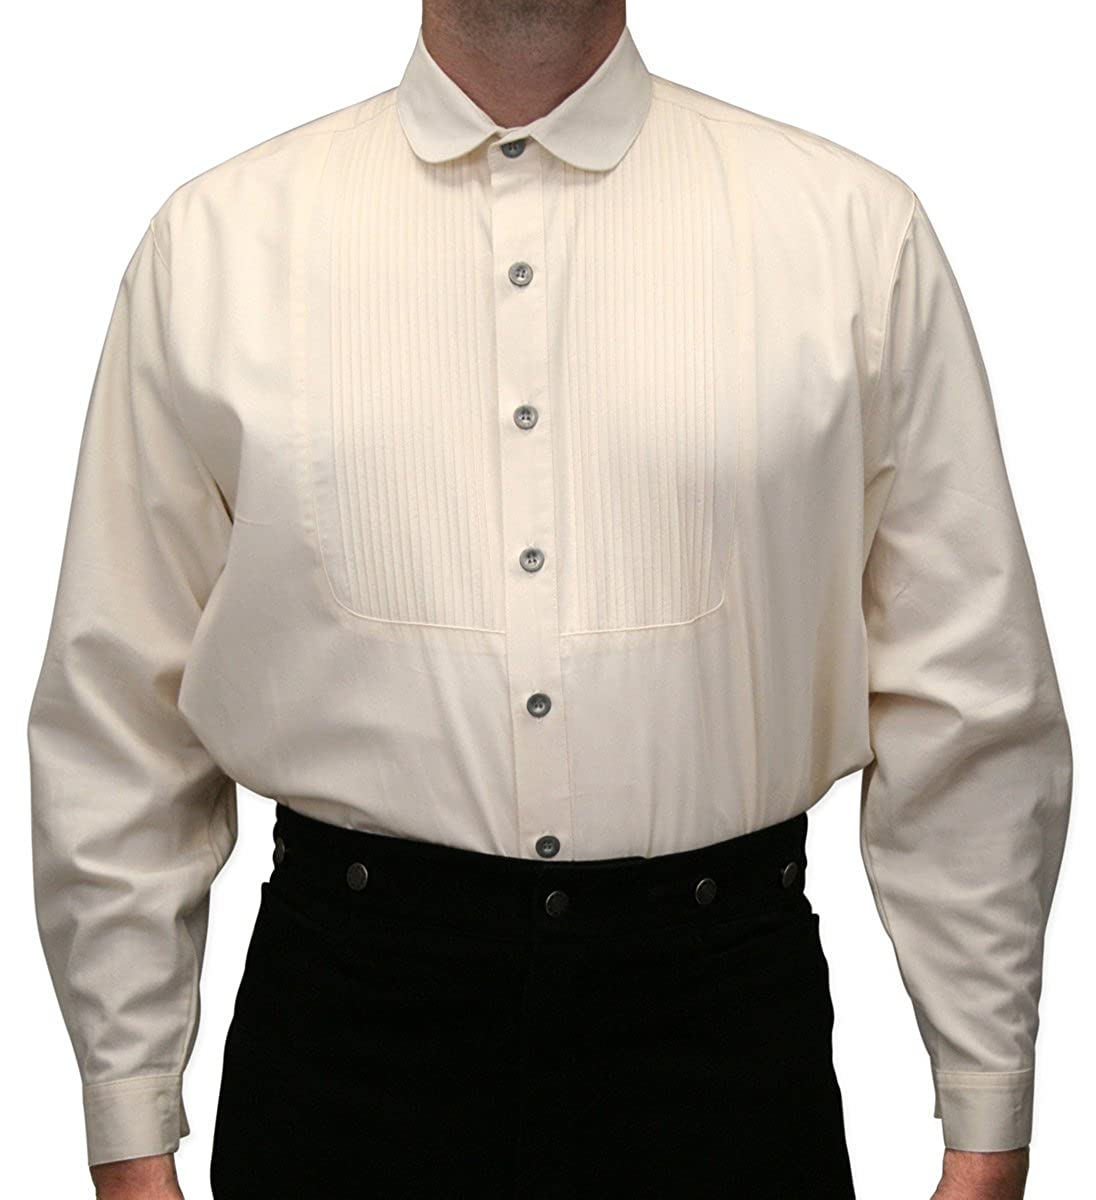 Mens Vintage Shirts – Casual, Dress, T-shirts, Polos Historical Emporium Mens Pleated Edwardian Round Club Collar Dress Shirt $59.95 AT vintagedancer.com